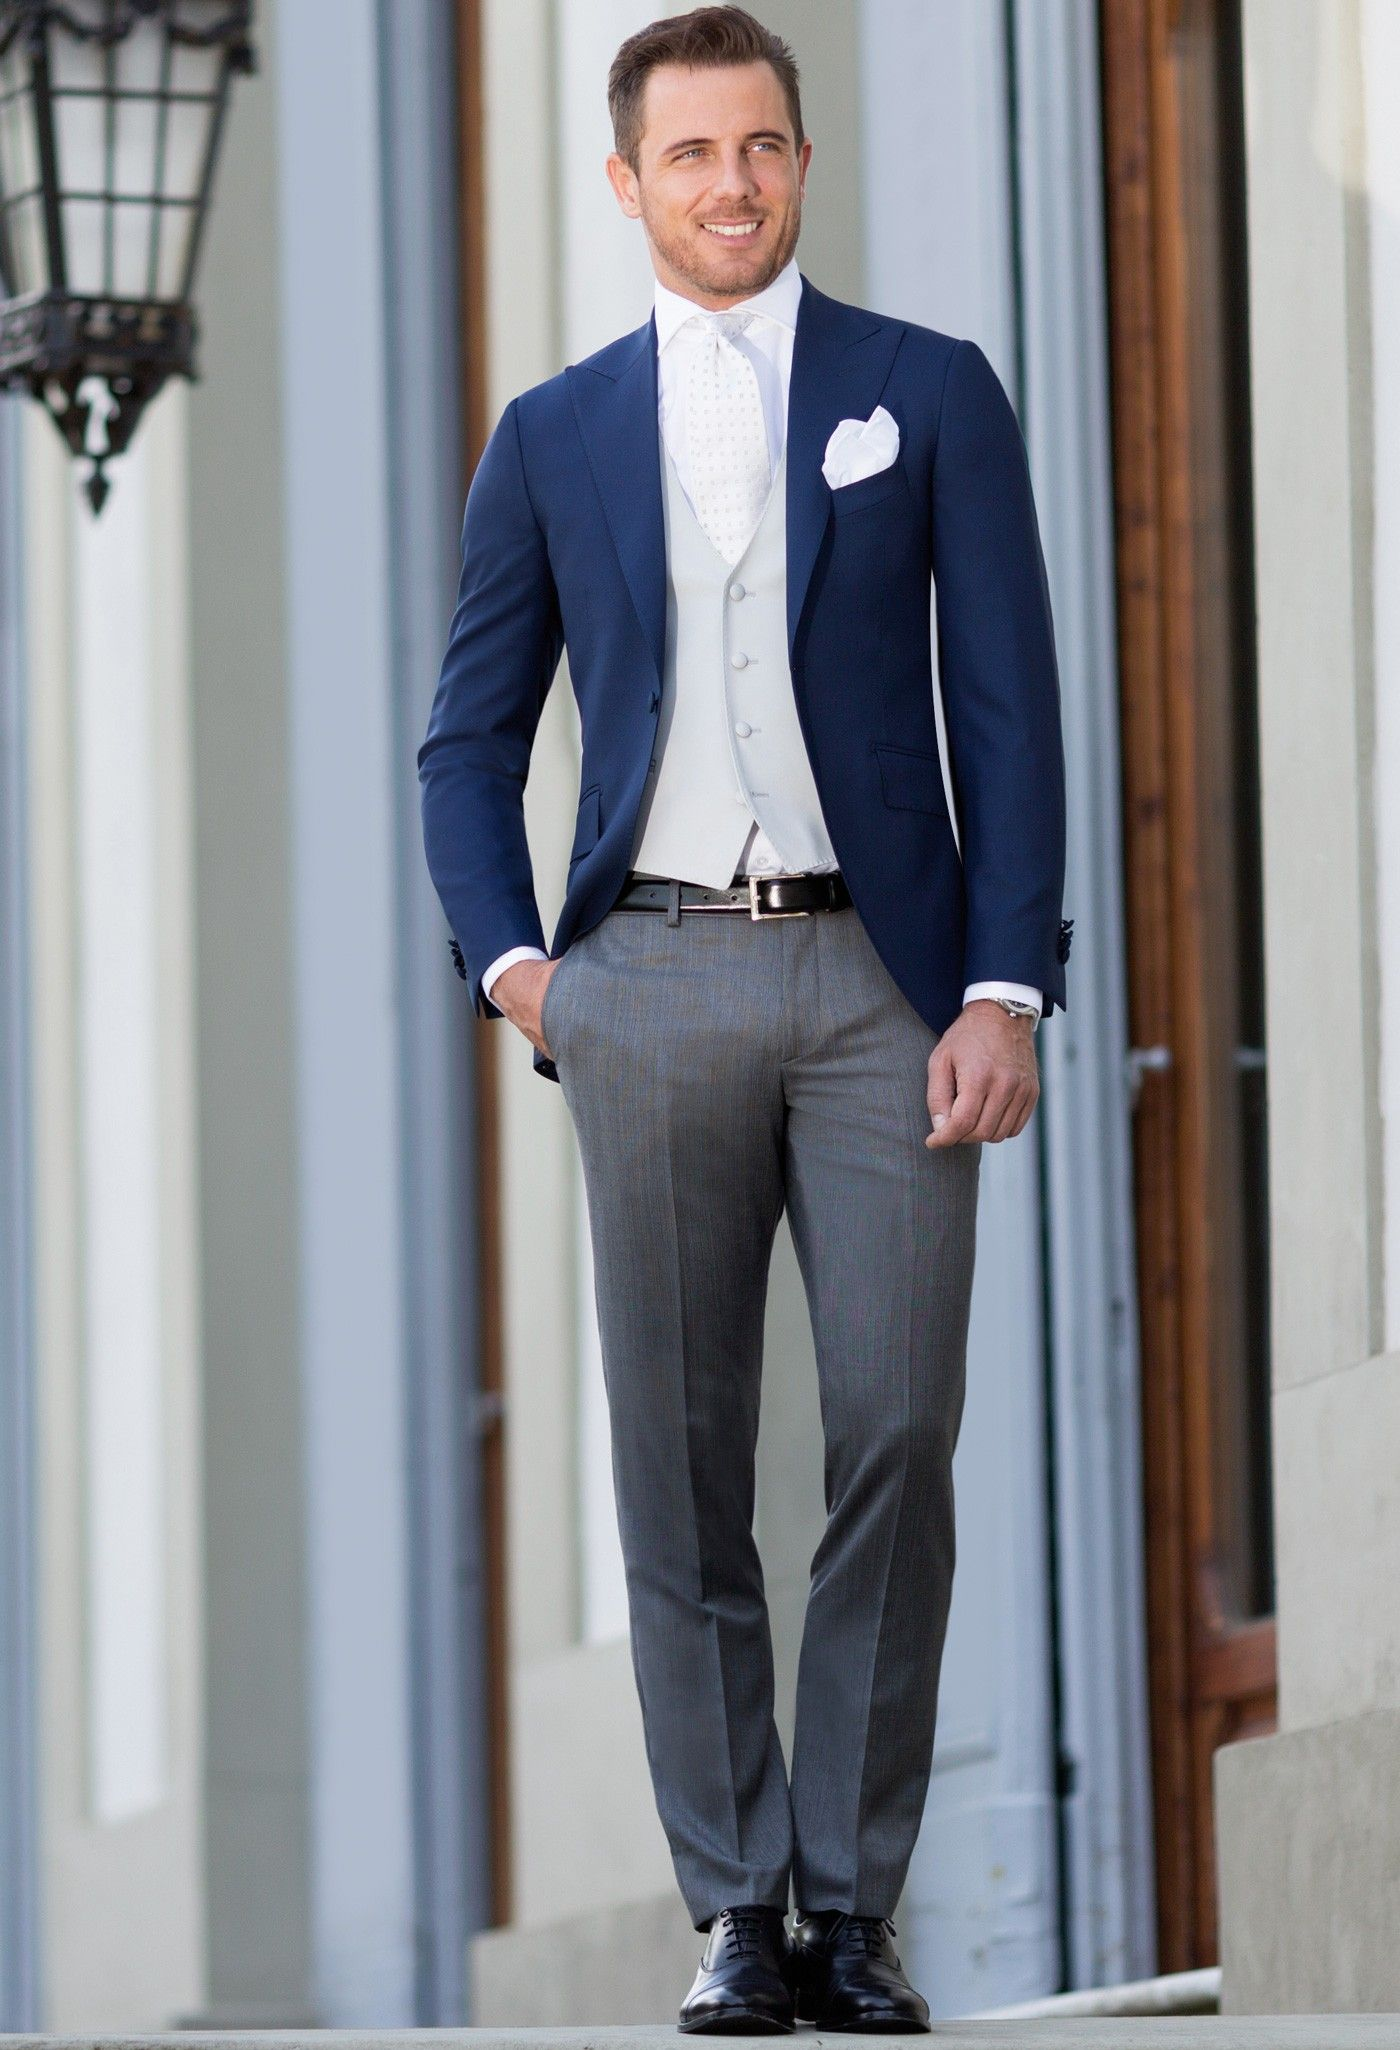 Pin by zulfikar ali on Suited   Pinterest   Morning suits, Stylish ...